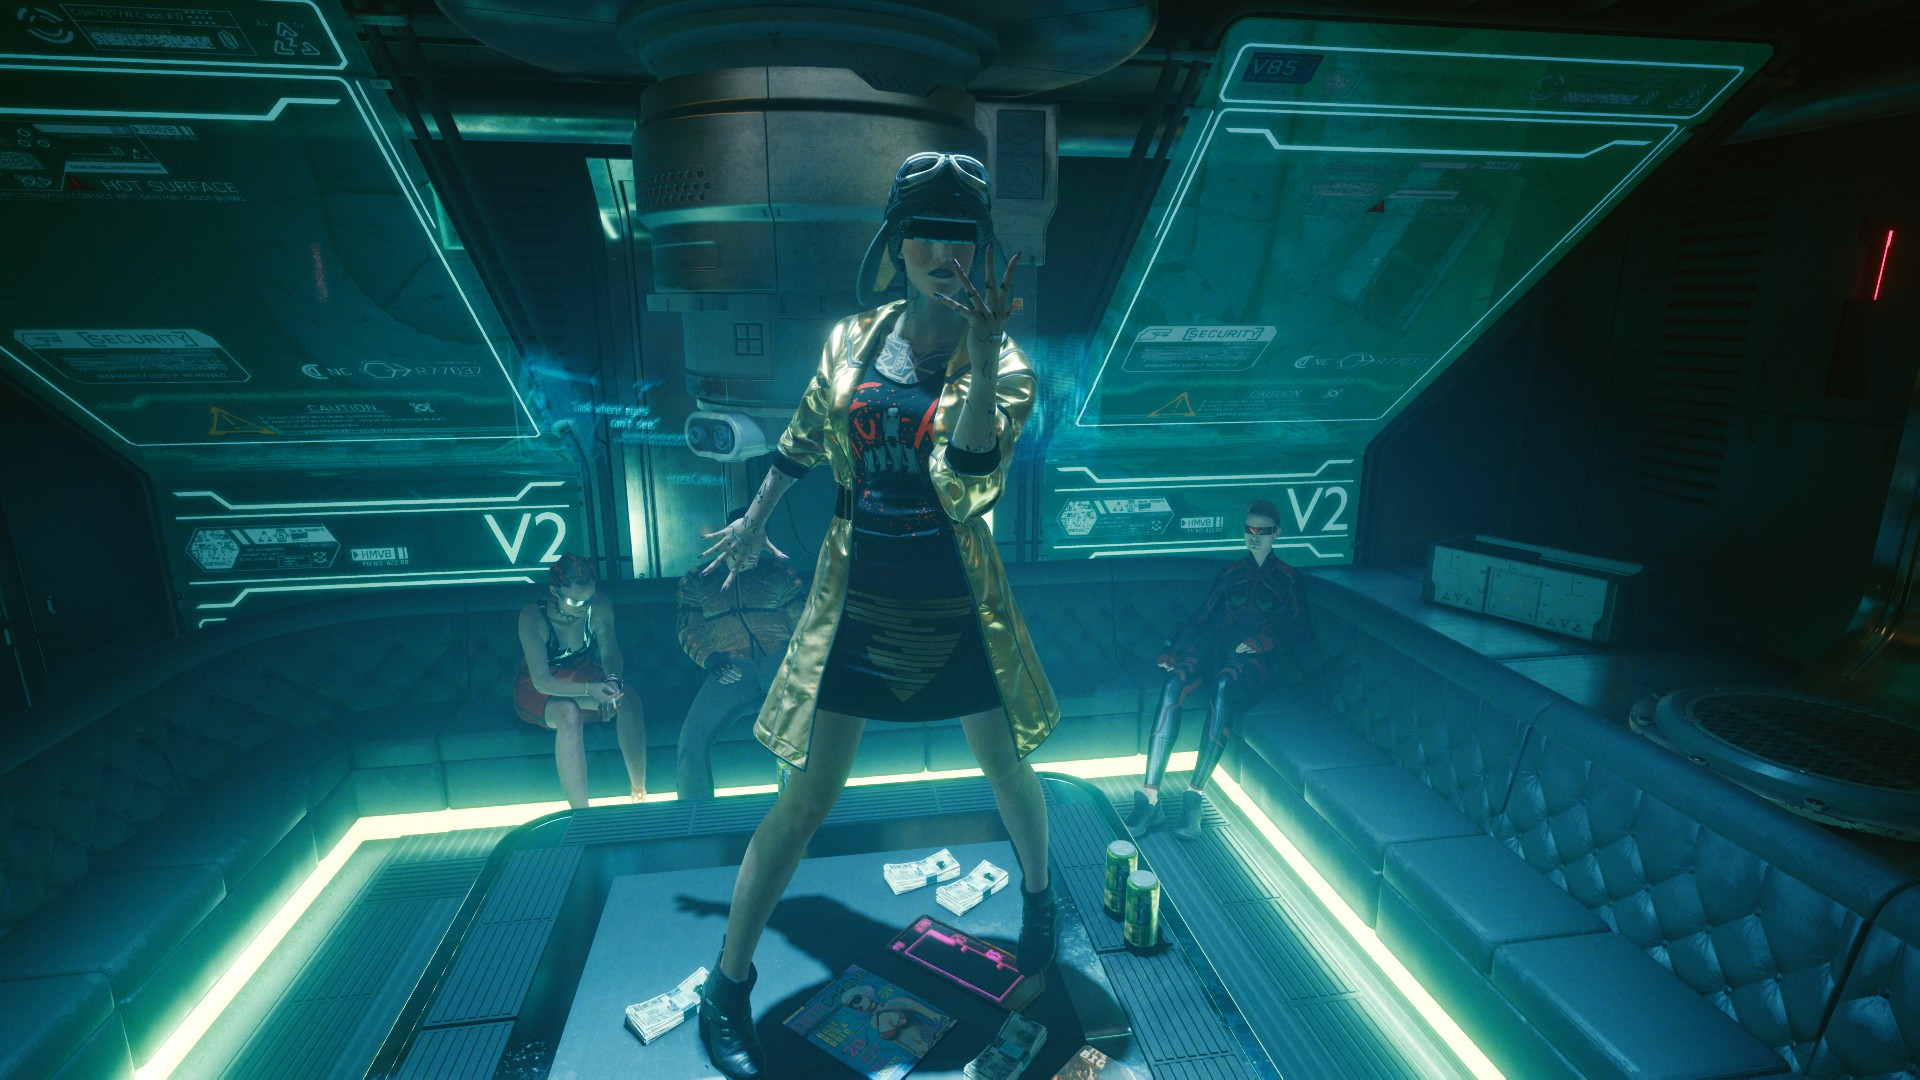 Cyberpunk 2077 on GeForce Now is brilliant if you don't have an RTX card